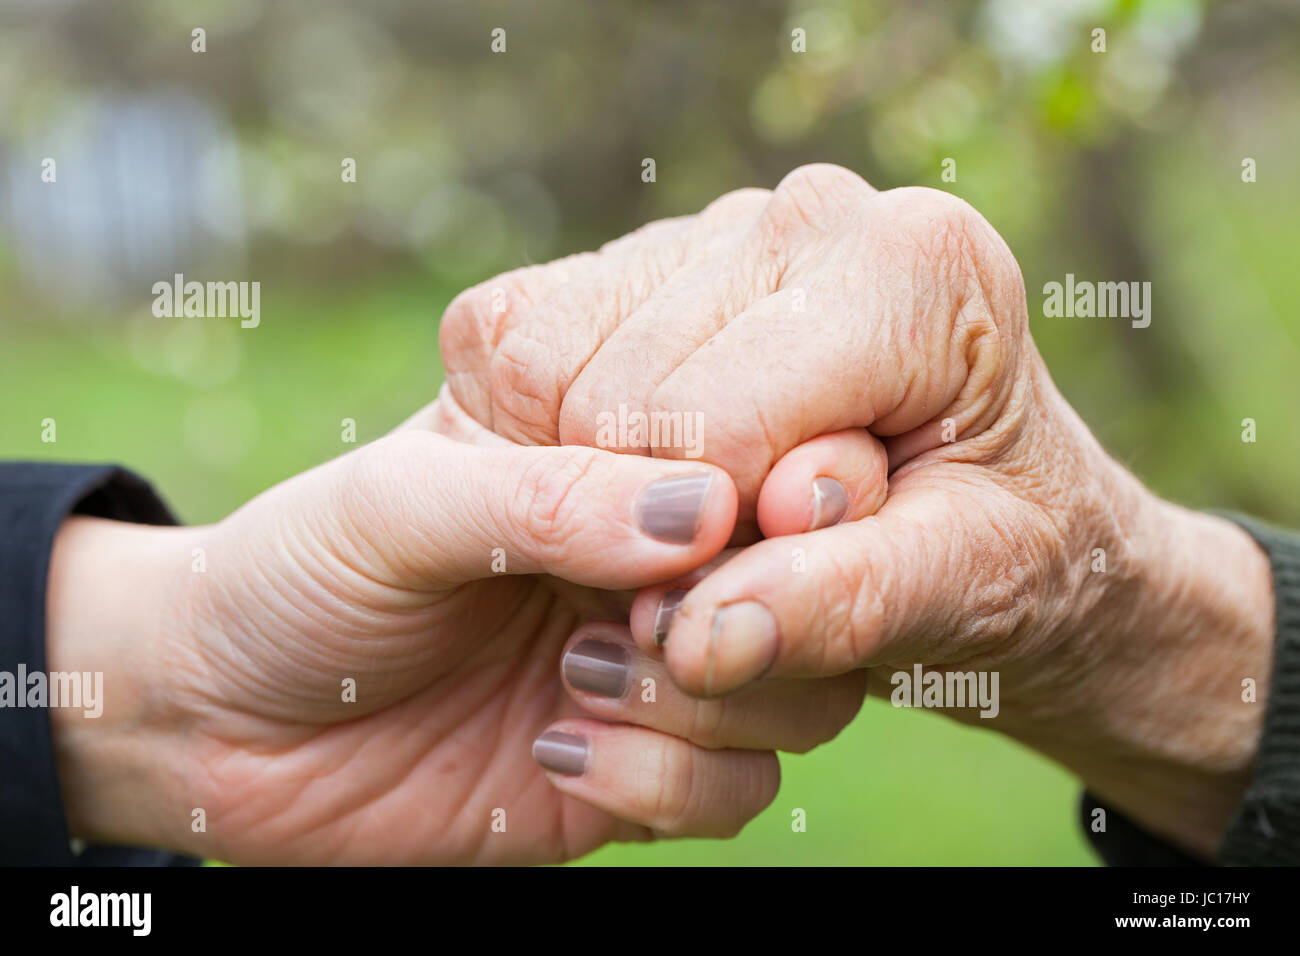 Close up picture of a young woman's hands holding an elderly female's hands - Stock Image